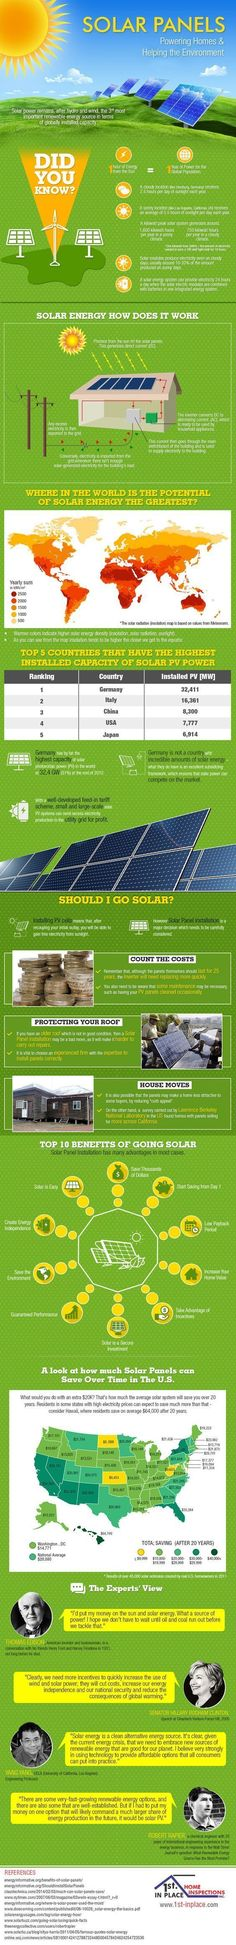 Advantages Of Solar Energy Infographic | Blog | 123SolarPower